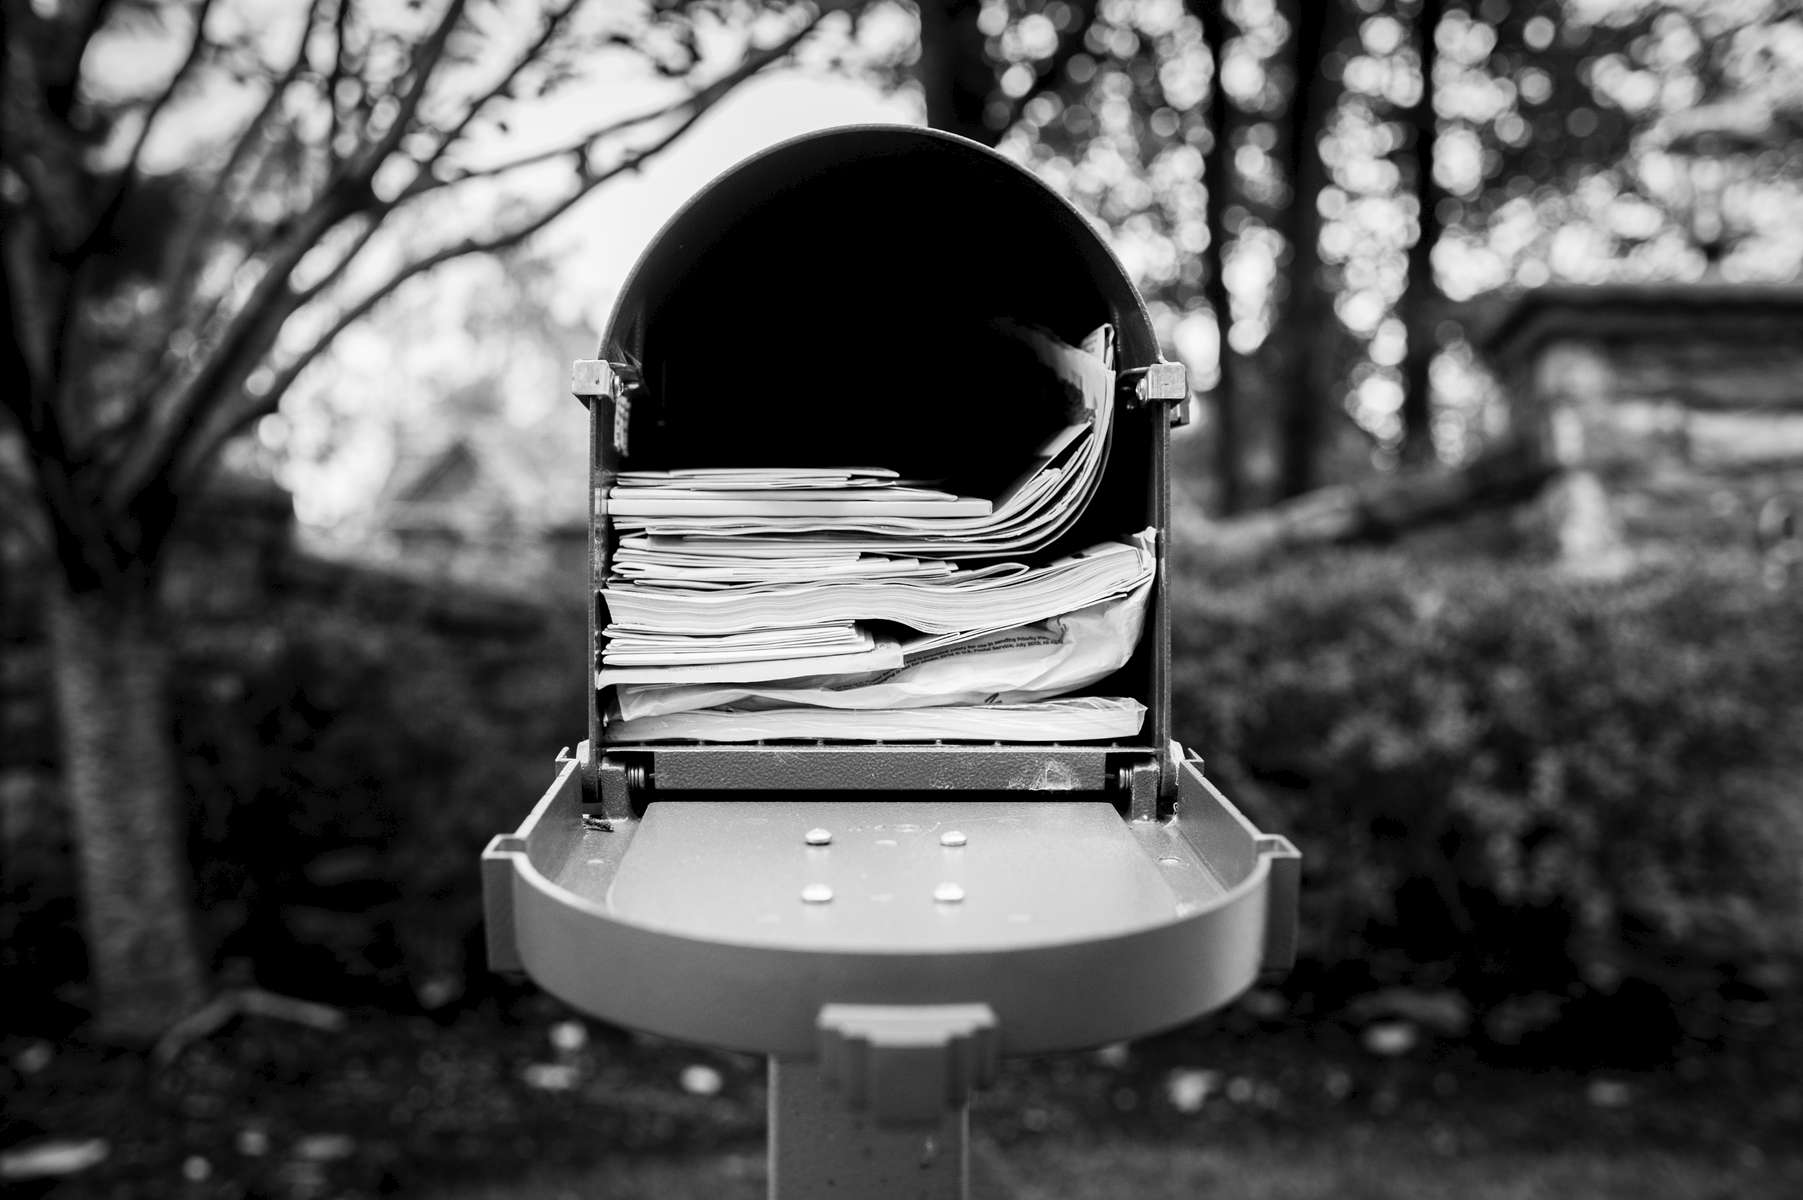 Like clockwork, Mom always picked up the mail at the end of each day. This full mailbox signified to me that something was very wrong as it was clear that she had not gotten the mail in a week. Ordinary tasks were becoming very challenging for her.